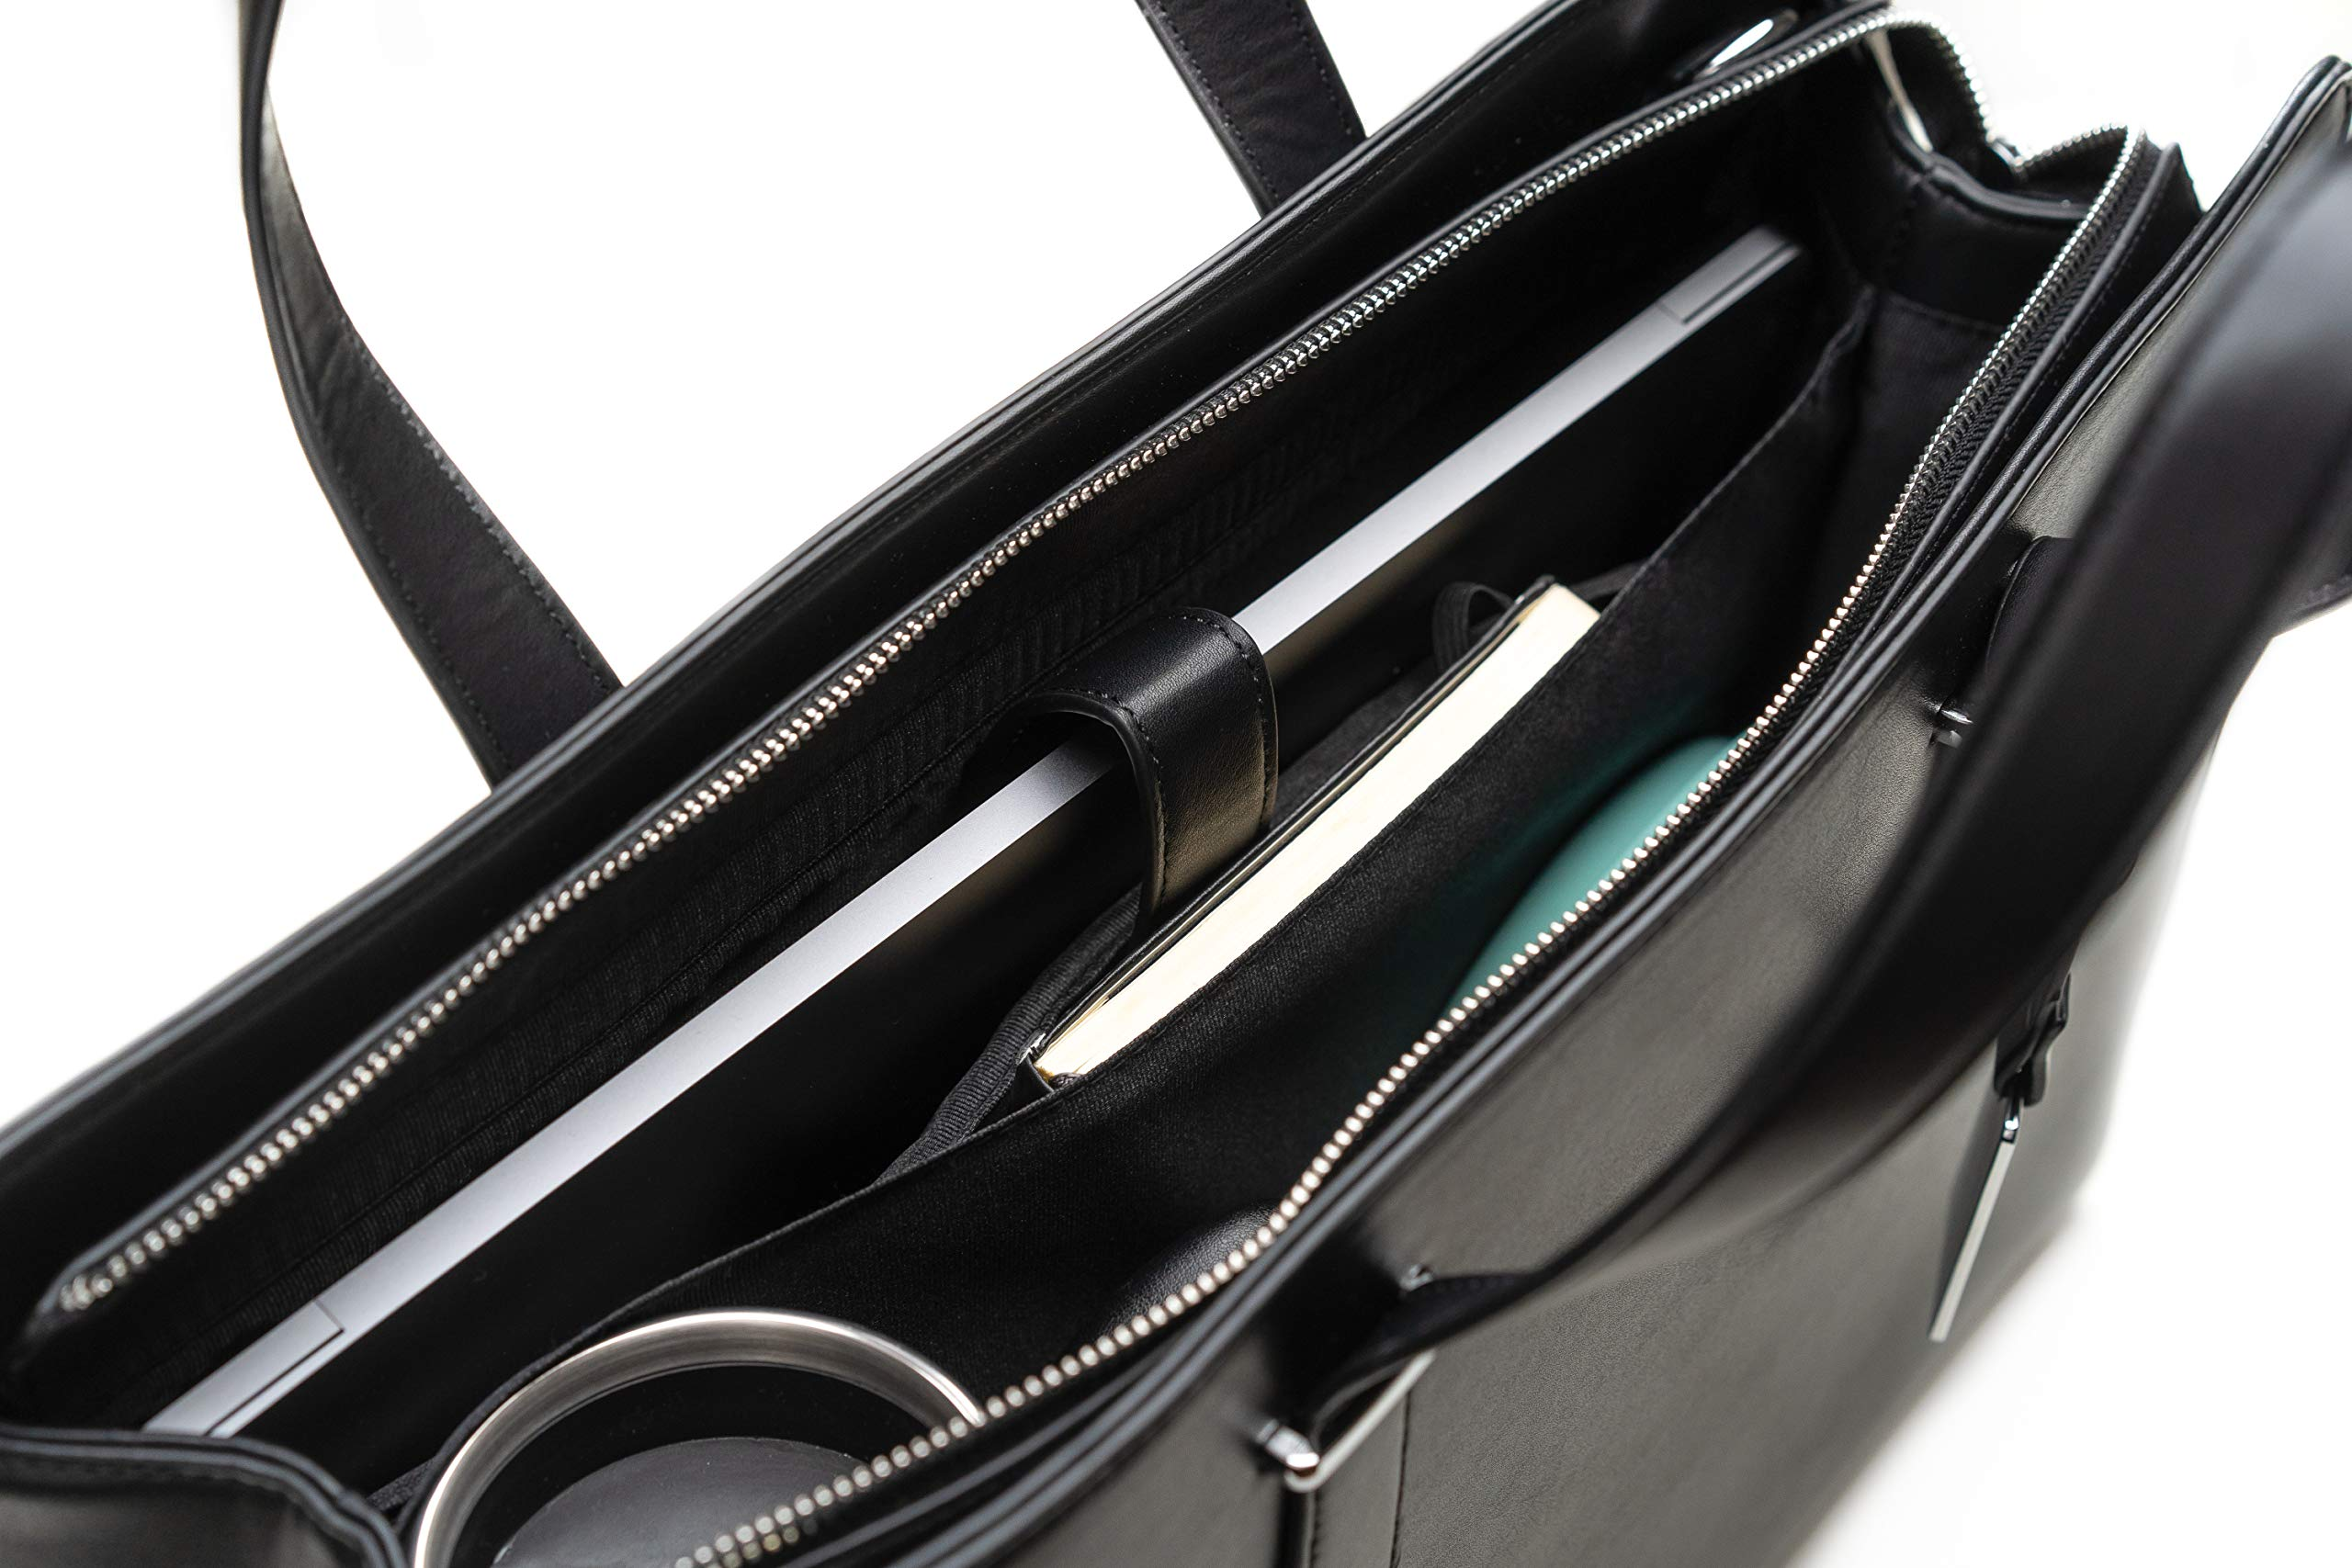 Computer Bag for Women - Ideal Laptop Tote Bag to Keep Your Business Documents, Laptop & Notebook Safe, Unique & Practical Laptop Accessories (Black) by BLONS California (Image #4)